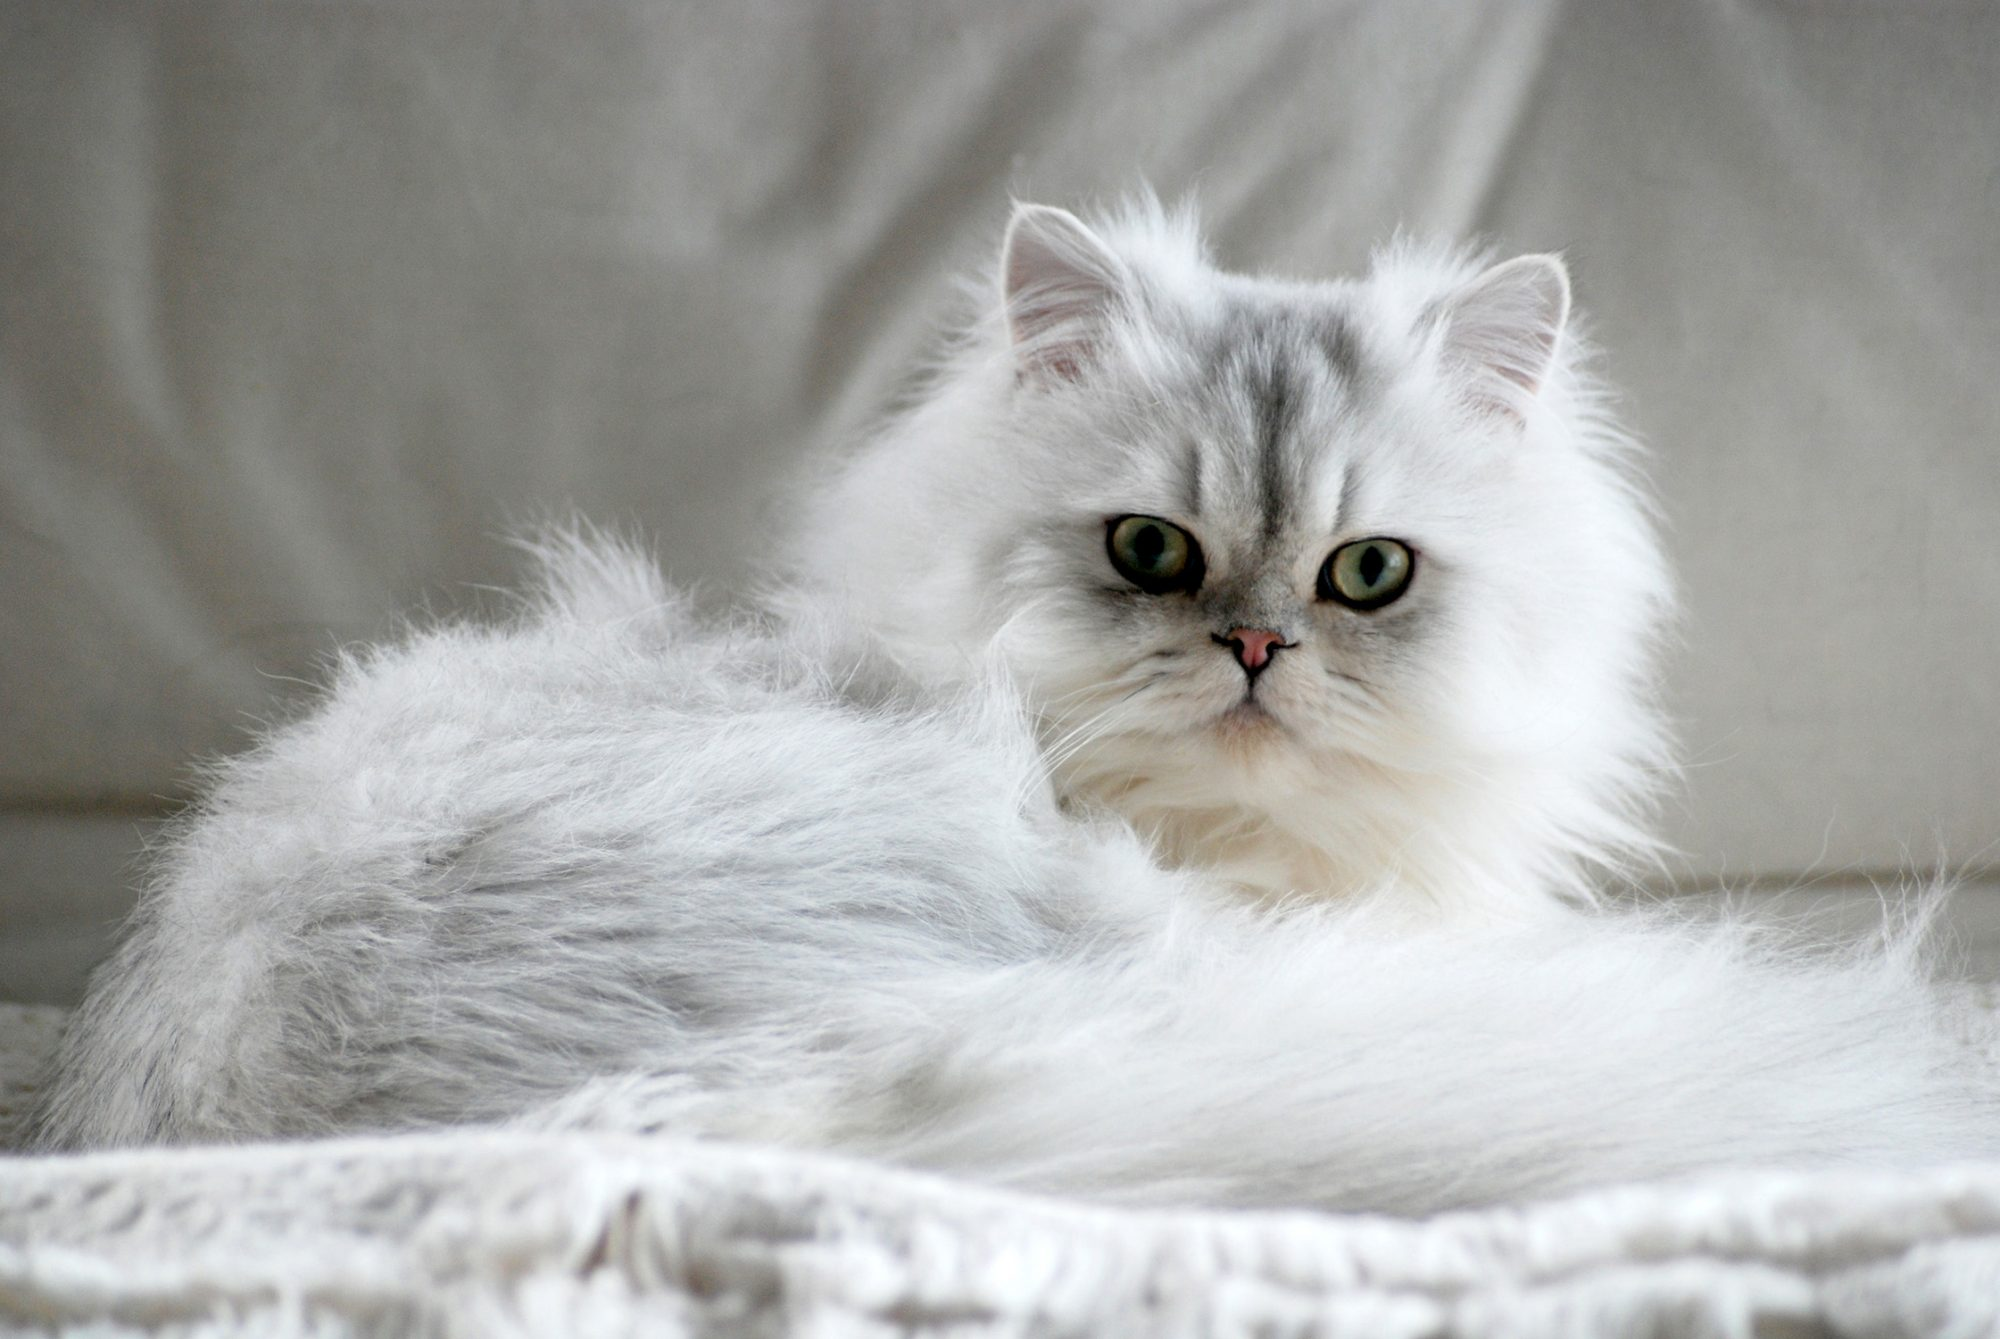 Fluffy Persian white cat lying down looking into camera